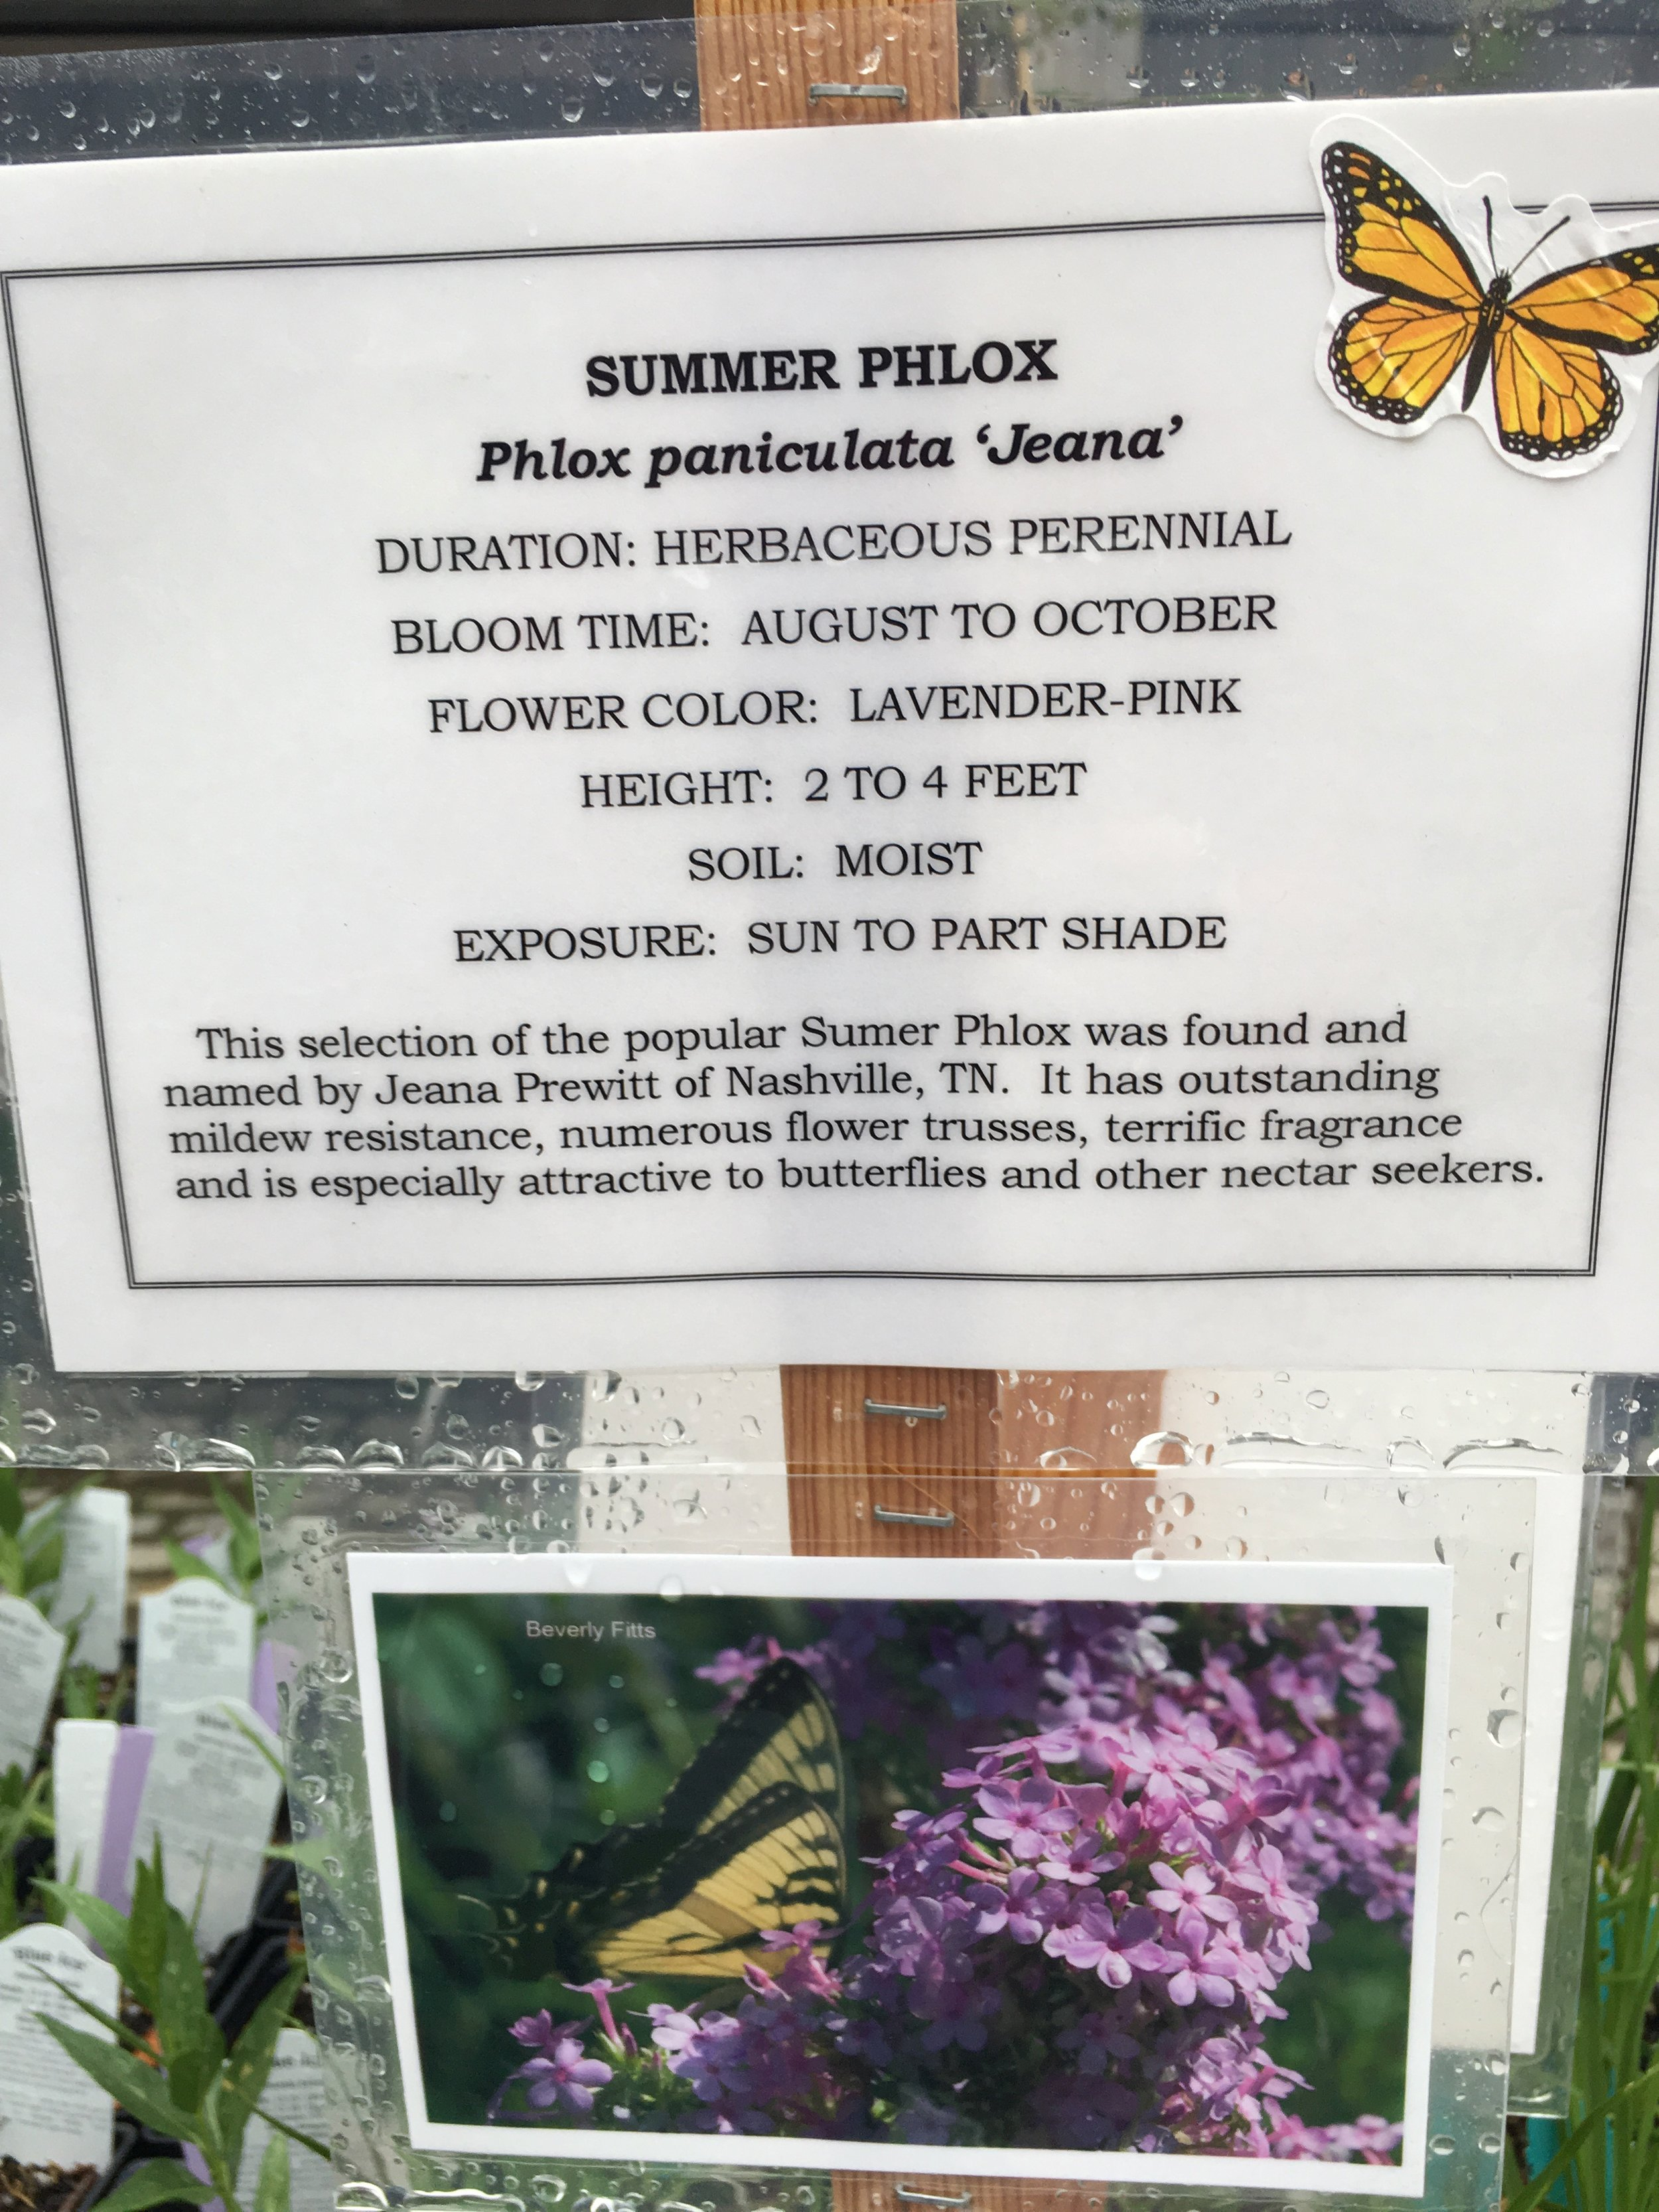 One of my - first orders of business was attending a lecture on how and what to plant for pollinating bees and butterflies.